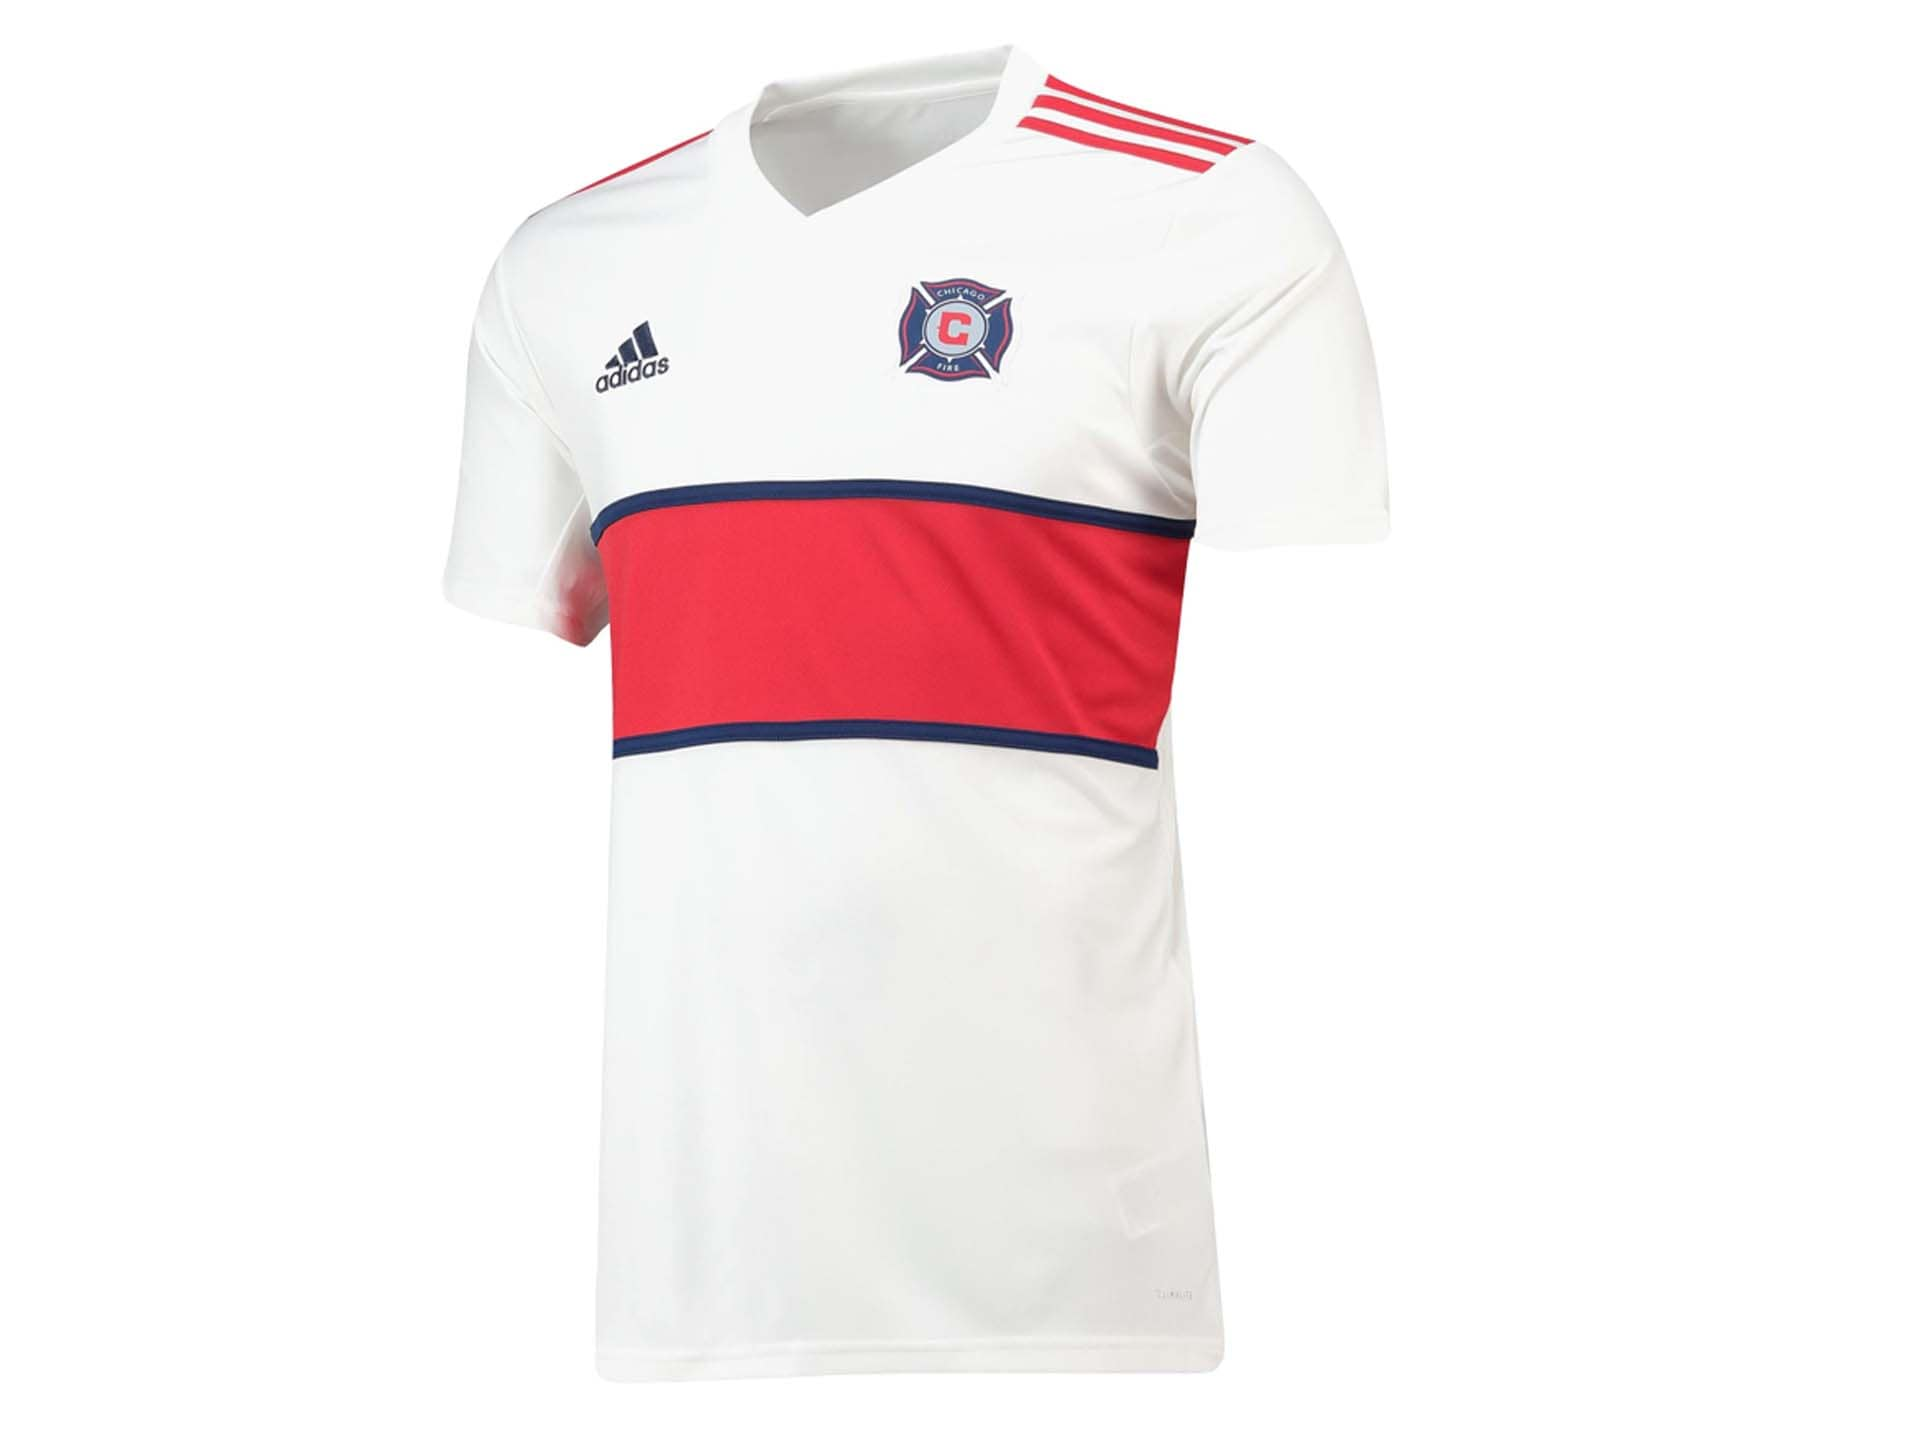 d6cd9c44b46 A Look At Every 2019 MLS Kit - SoccerBible